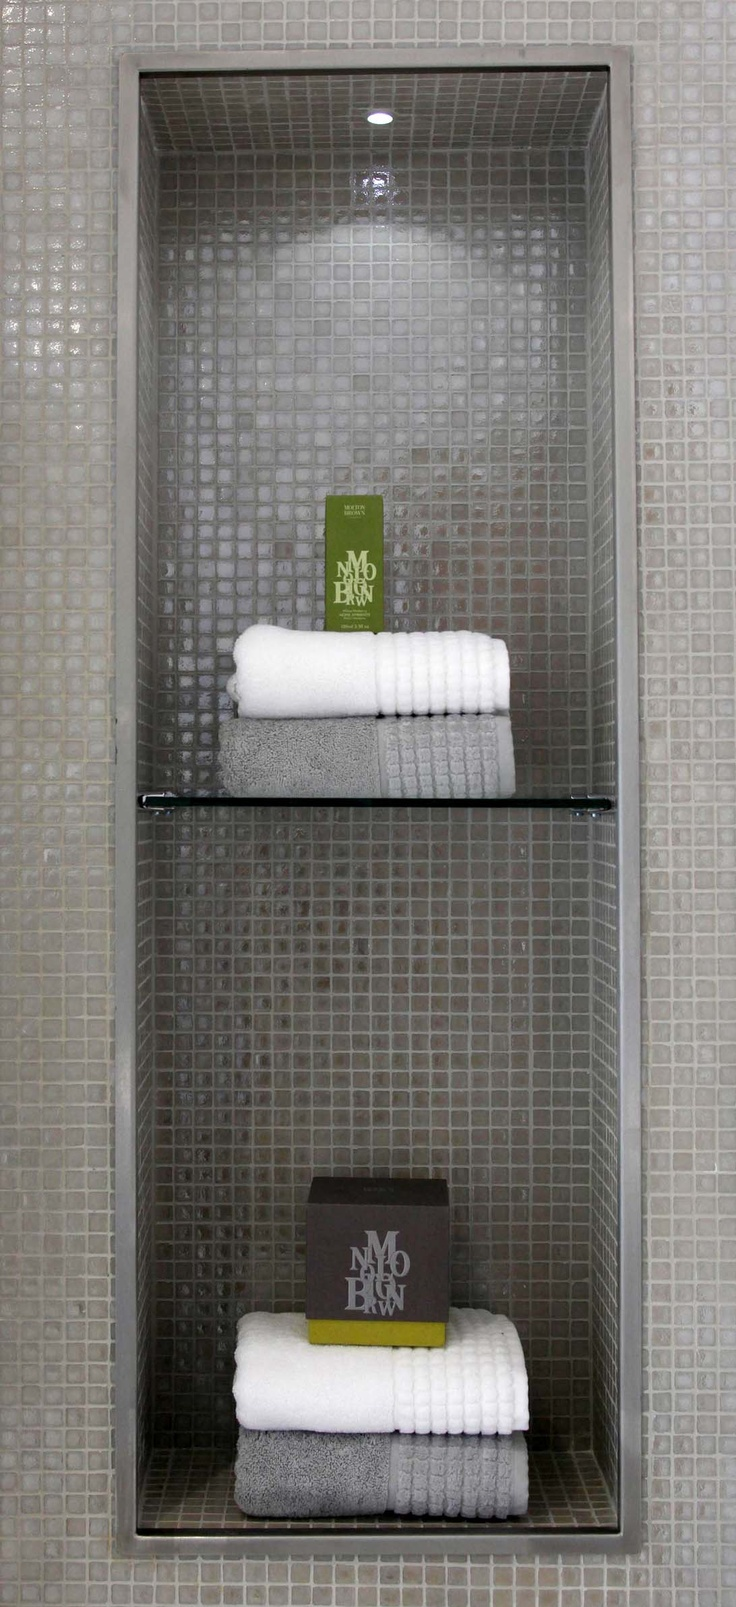 Gl Shelves For Bathroom Alcove This Is A Glorious Thing When They Are Discussing Statue Out Extra Storage With